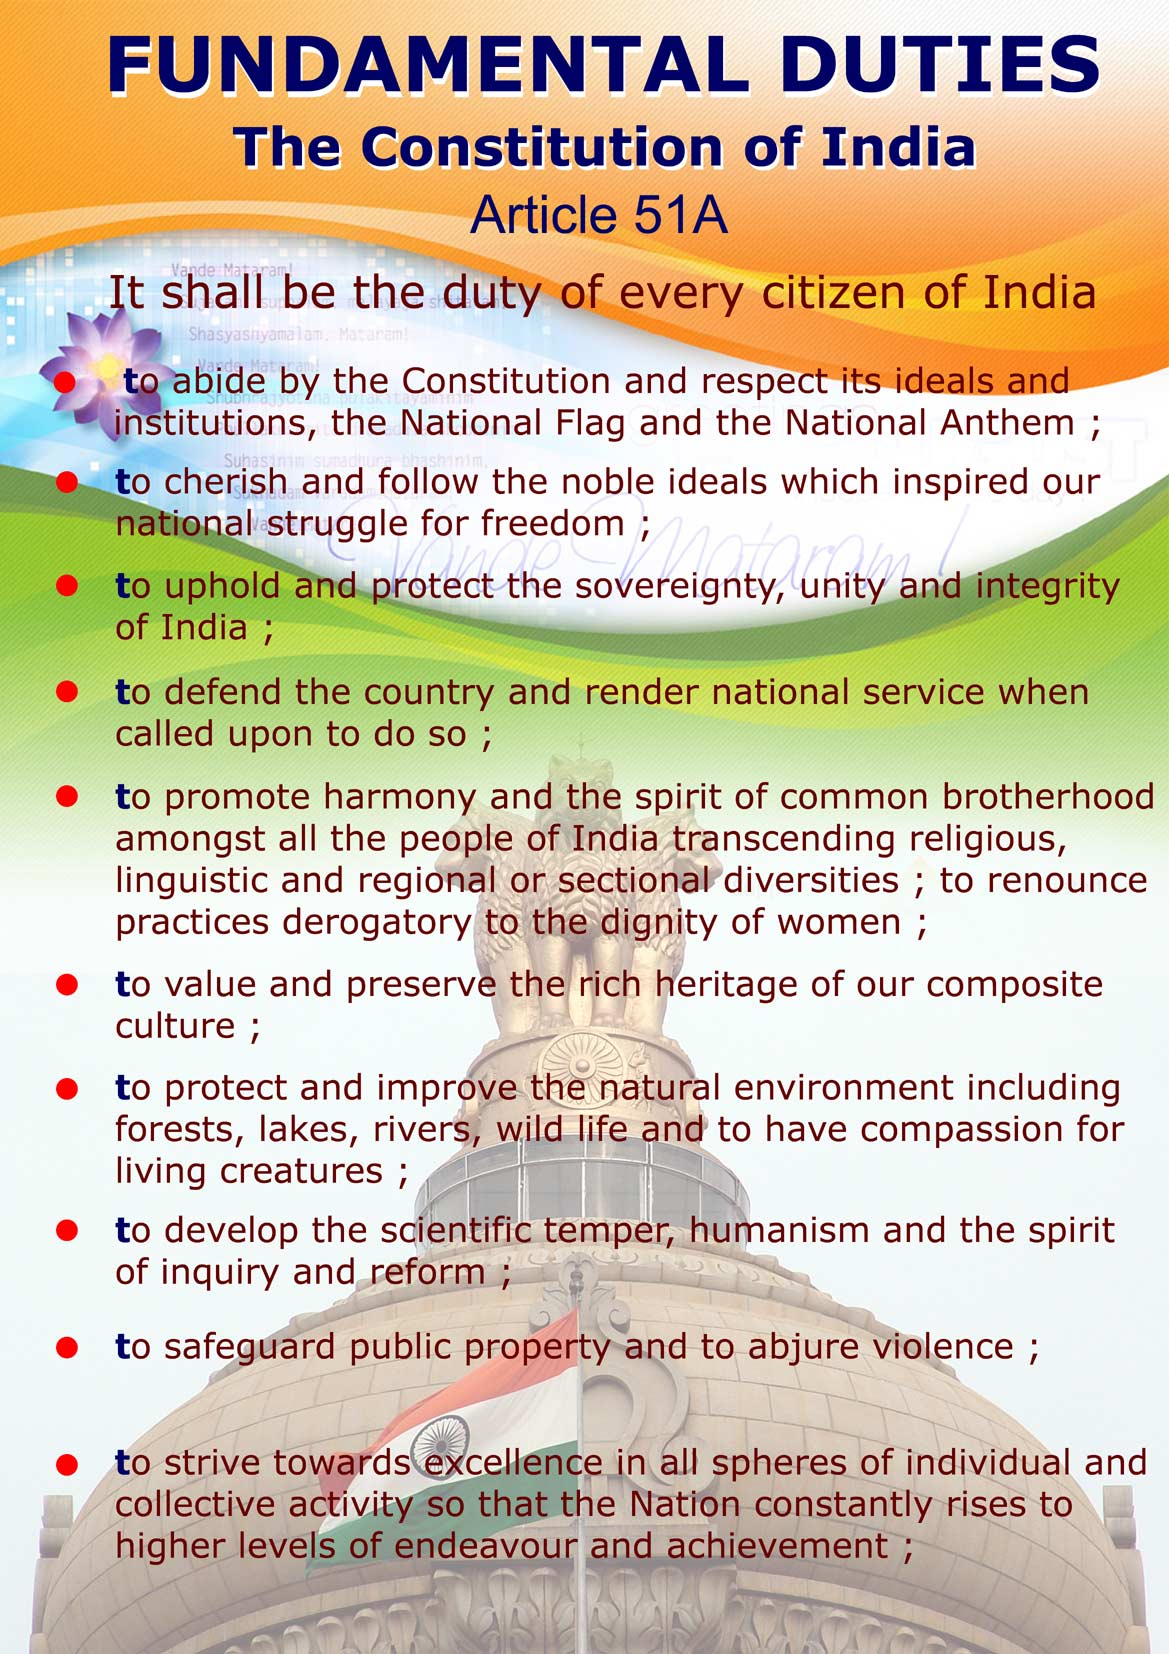 quotes about rights and duties quotes quotes about rights and duties